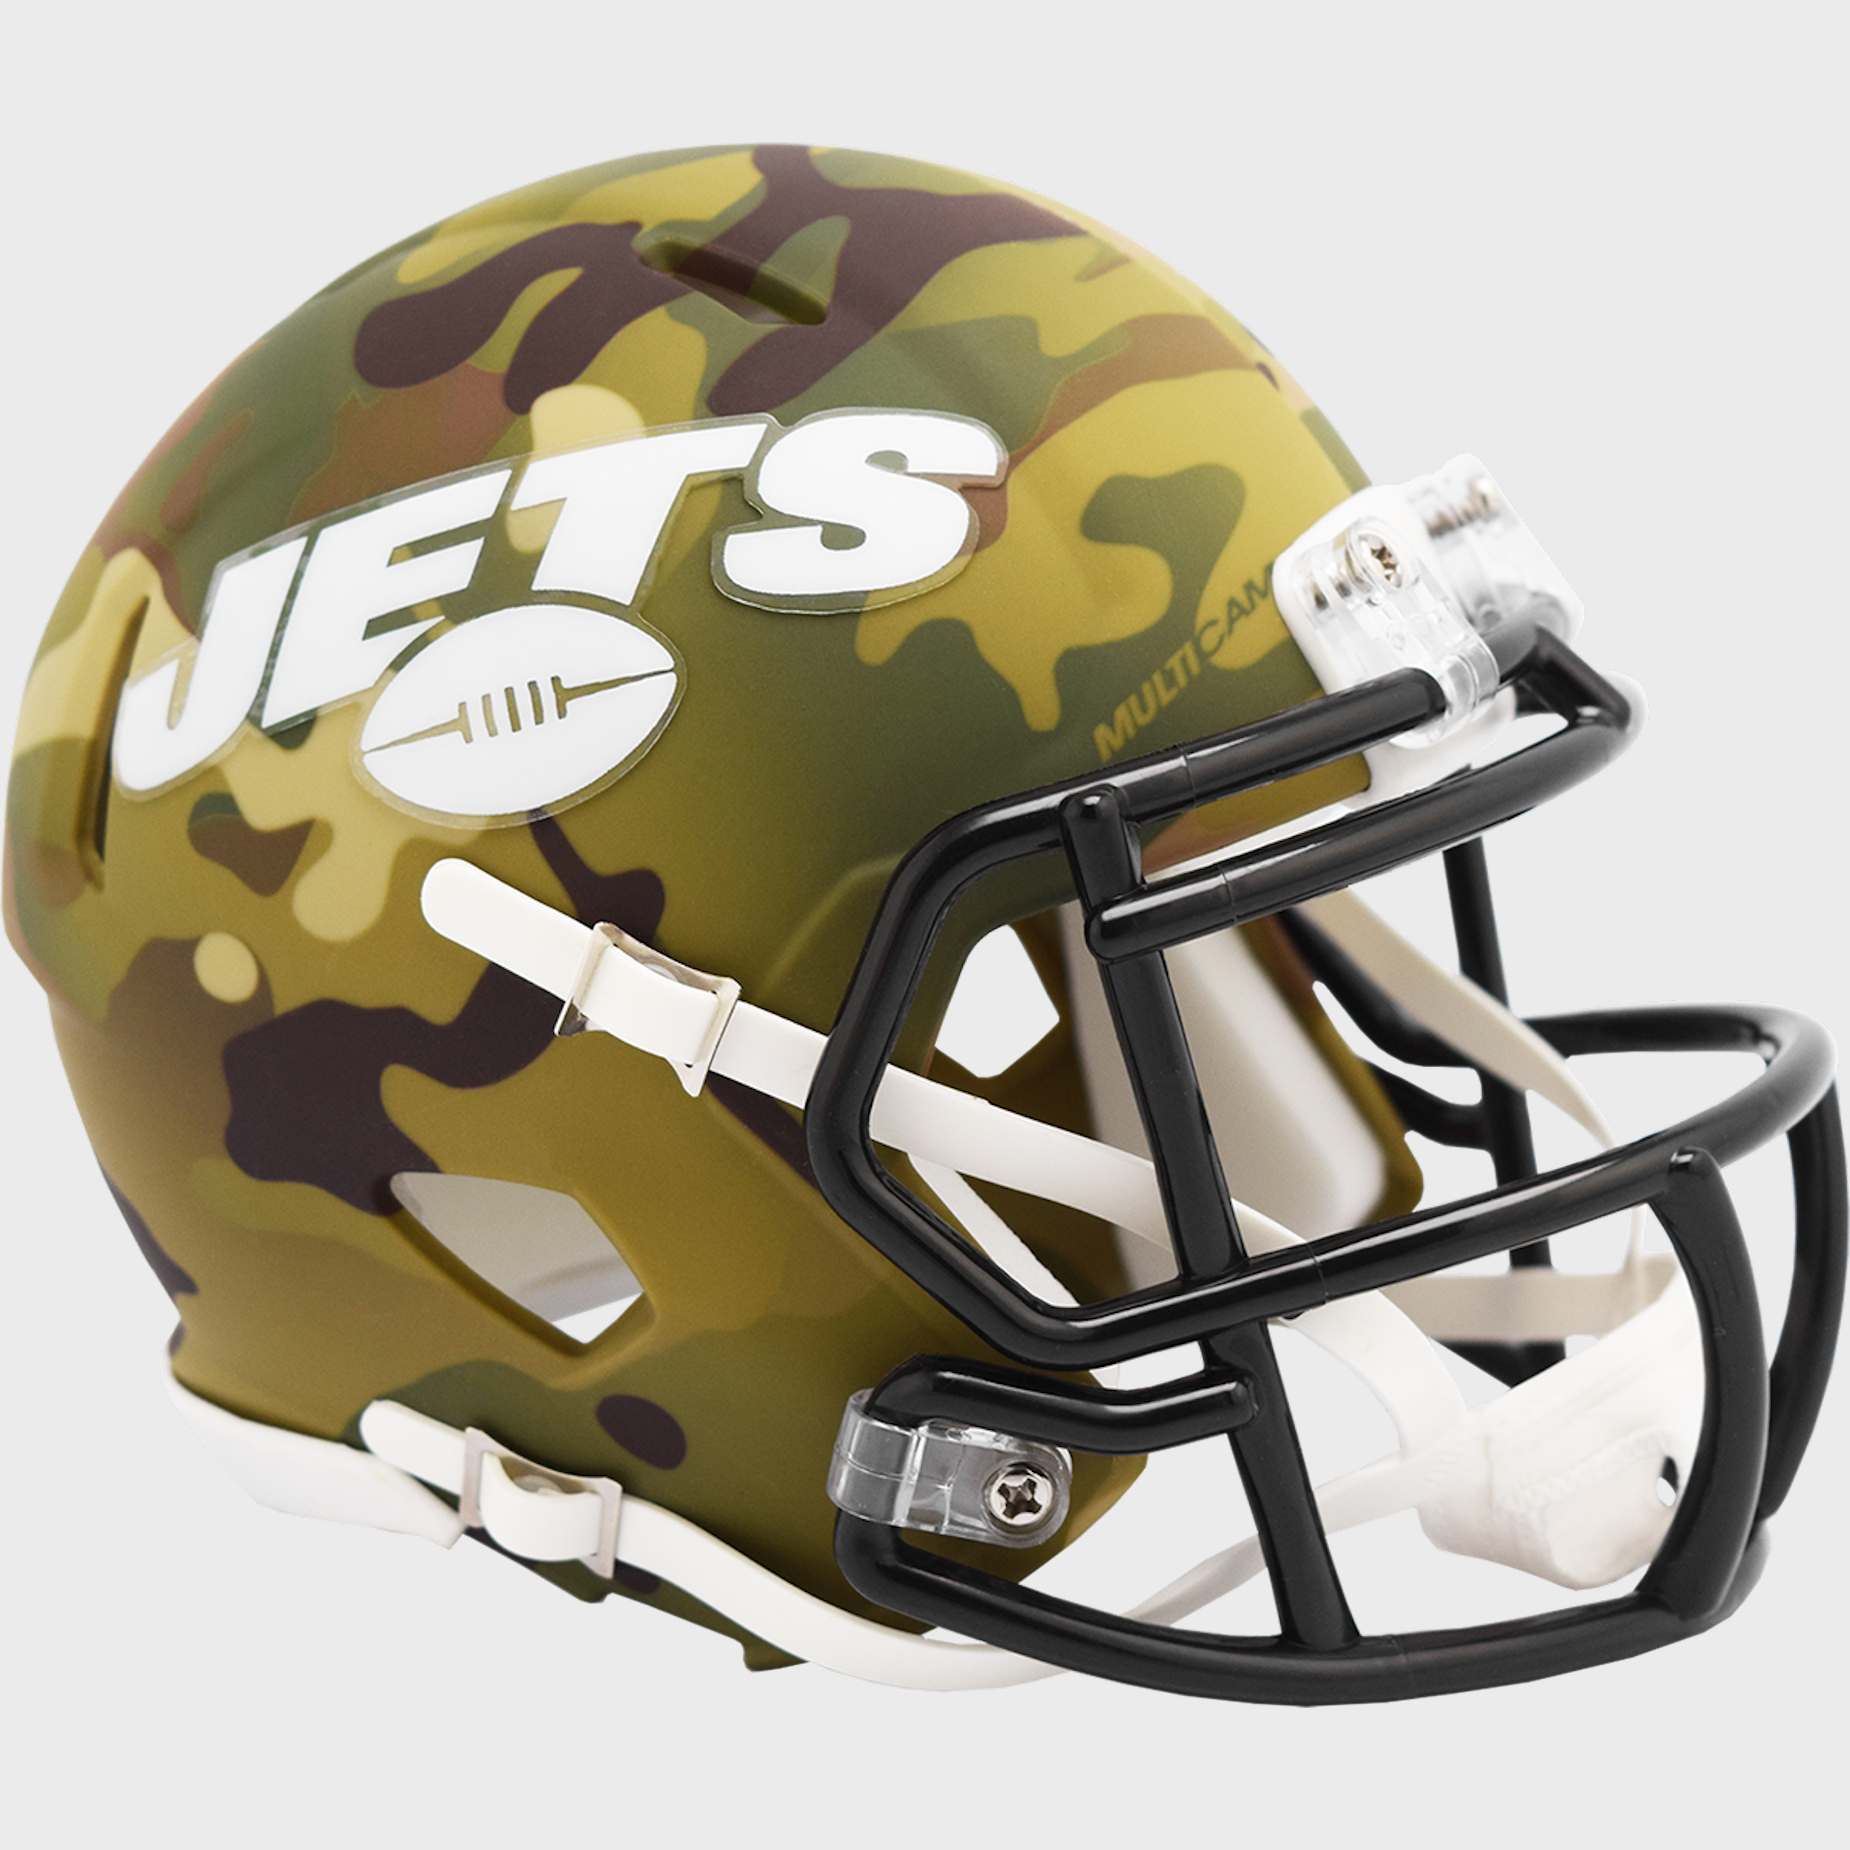 New York Jets NFL Mini Speed Football Helmet <B>CAMO</B>